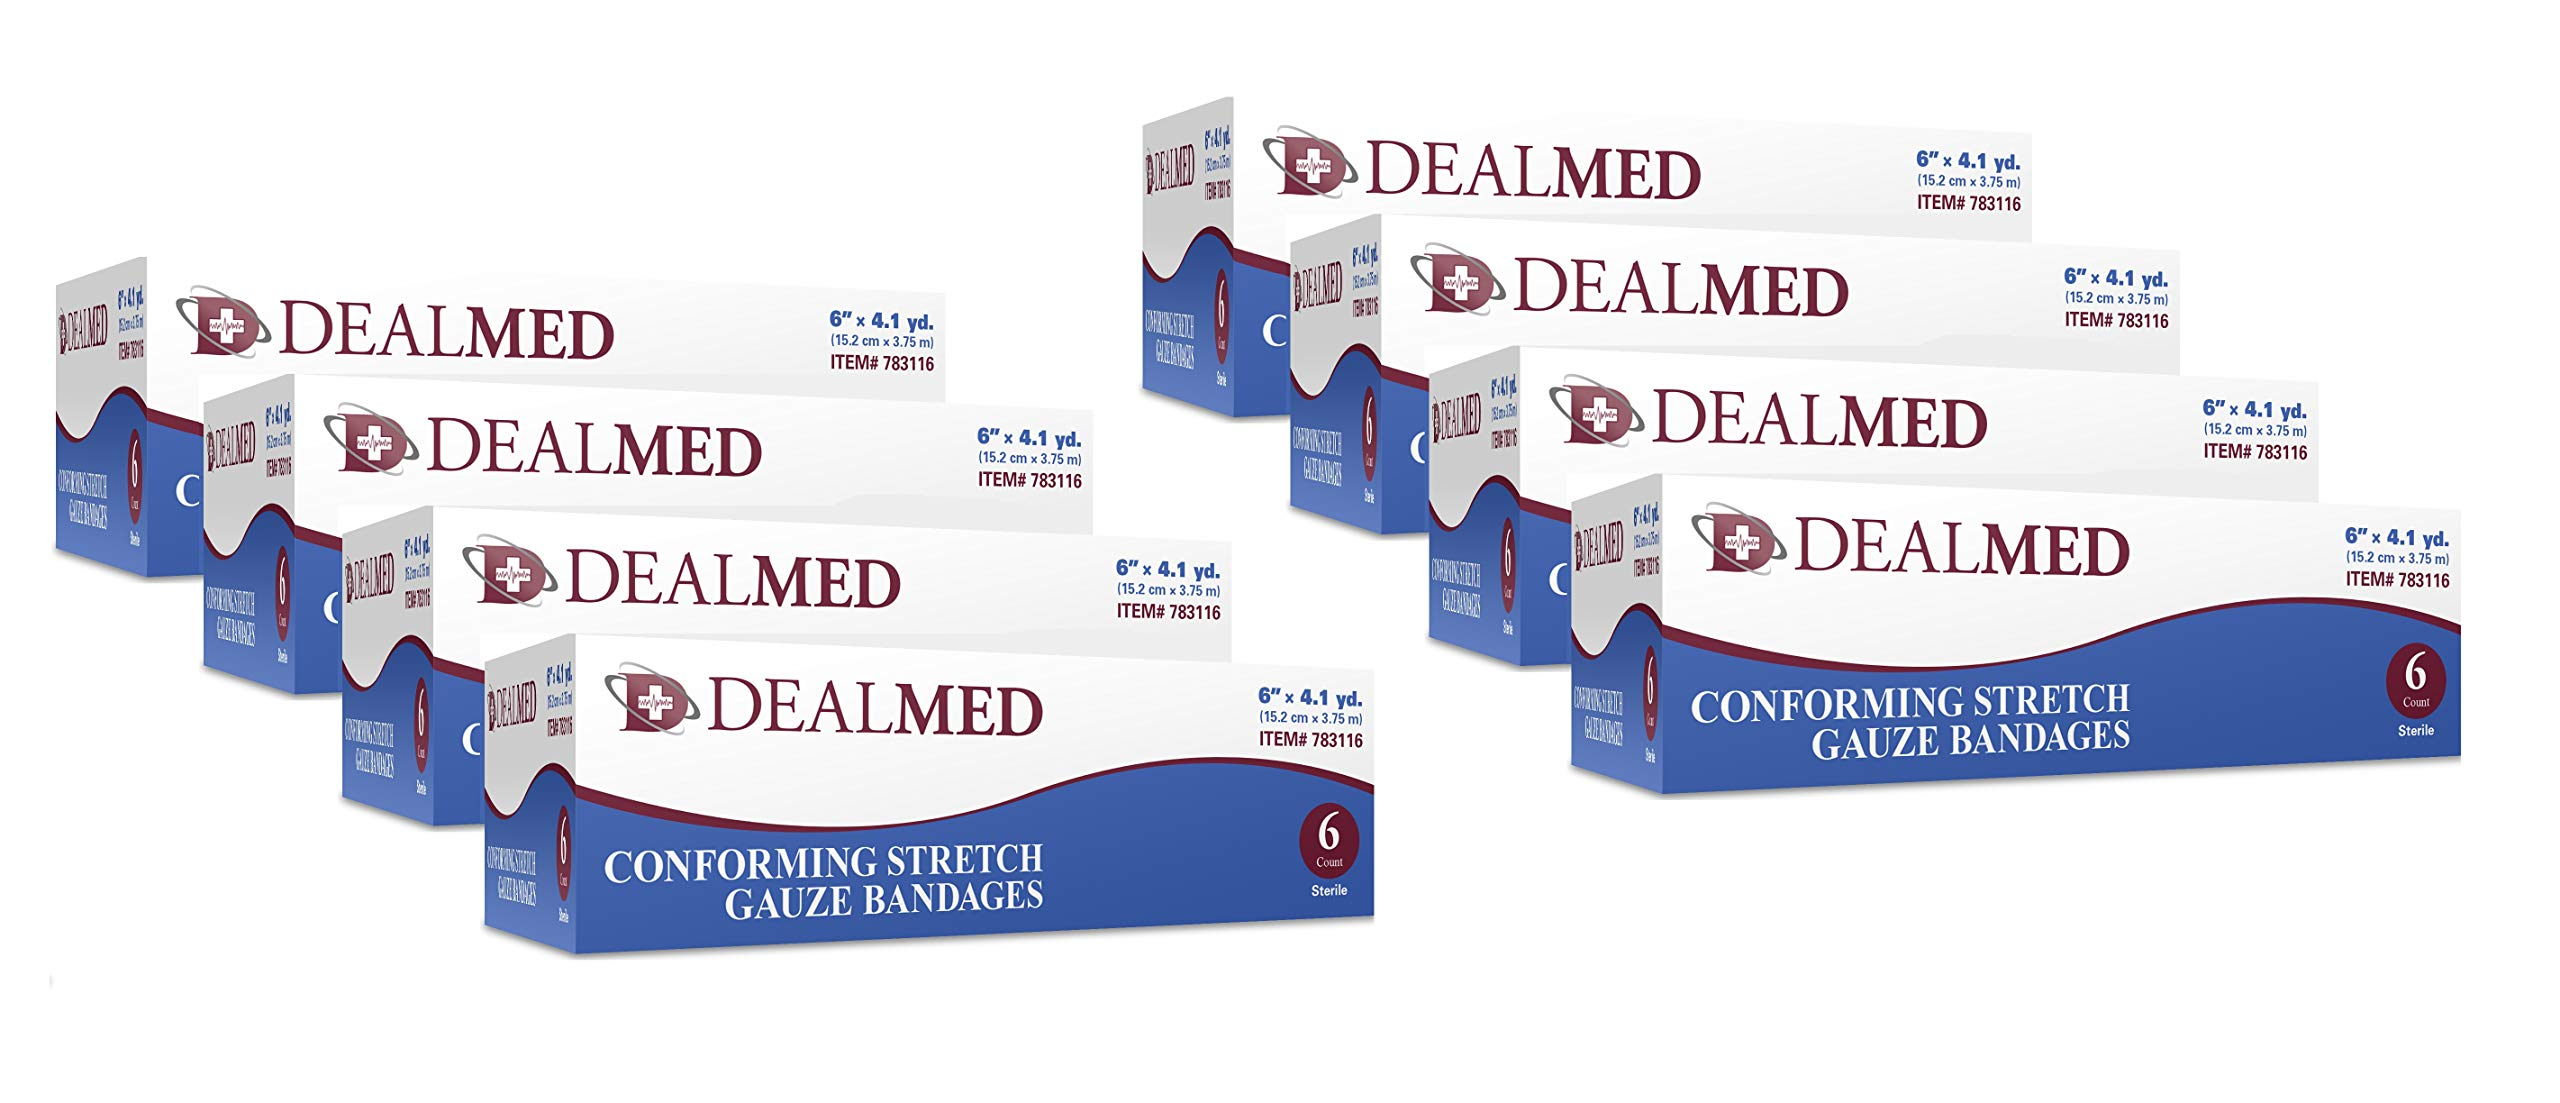 Dealmed 6'' Sterile Conforming Stretch Gauze Bandages, 4.1 Yards Stretched, 6 Rolls/Box - 48 Count